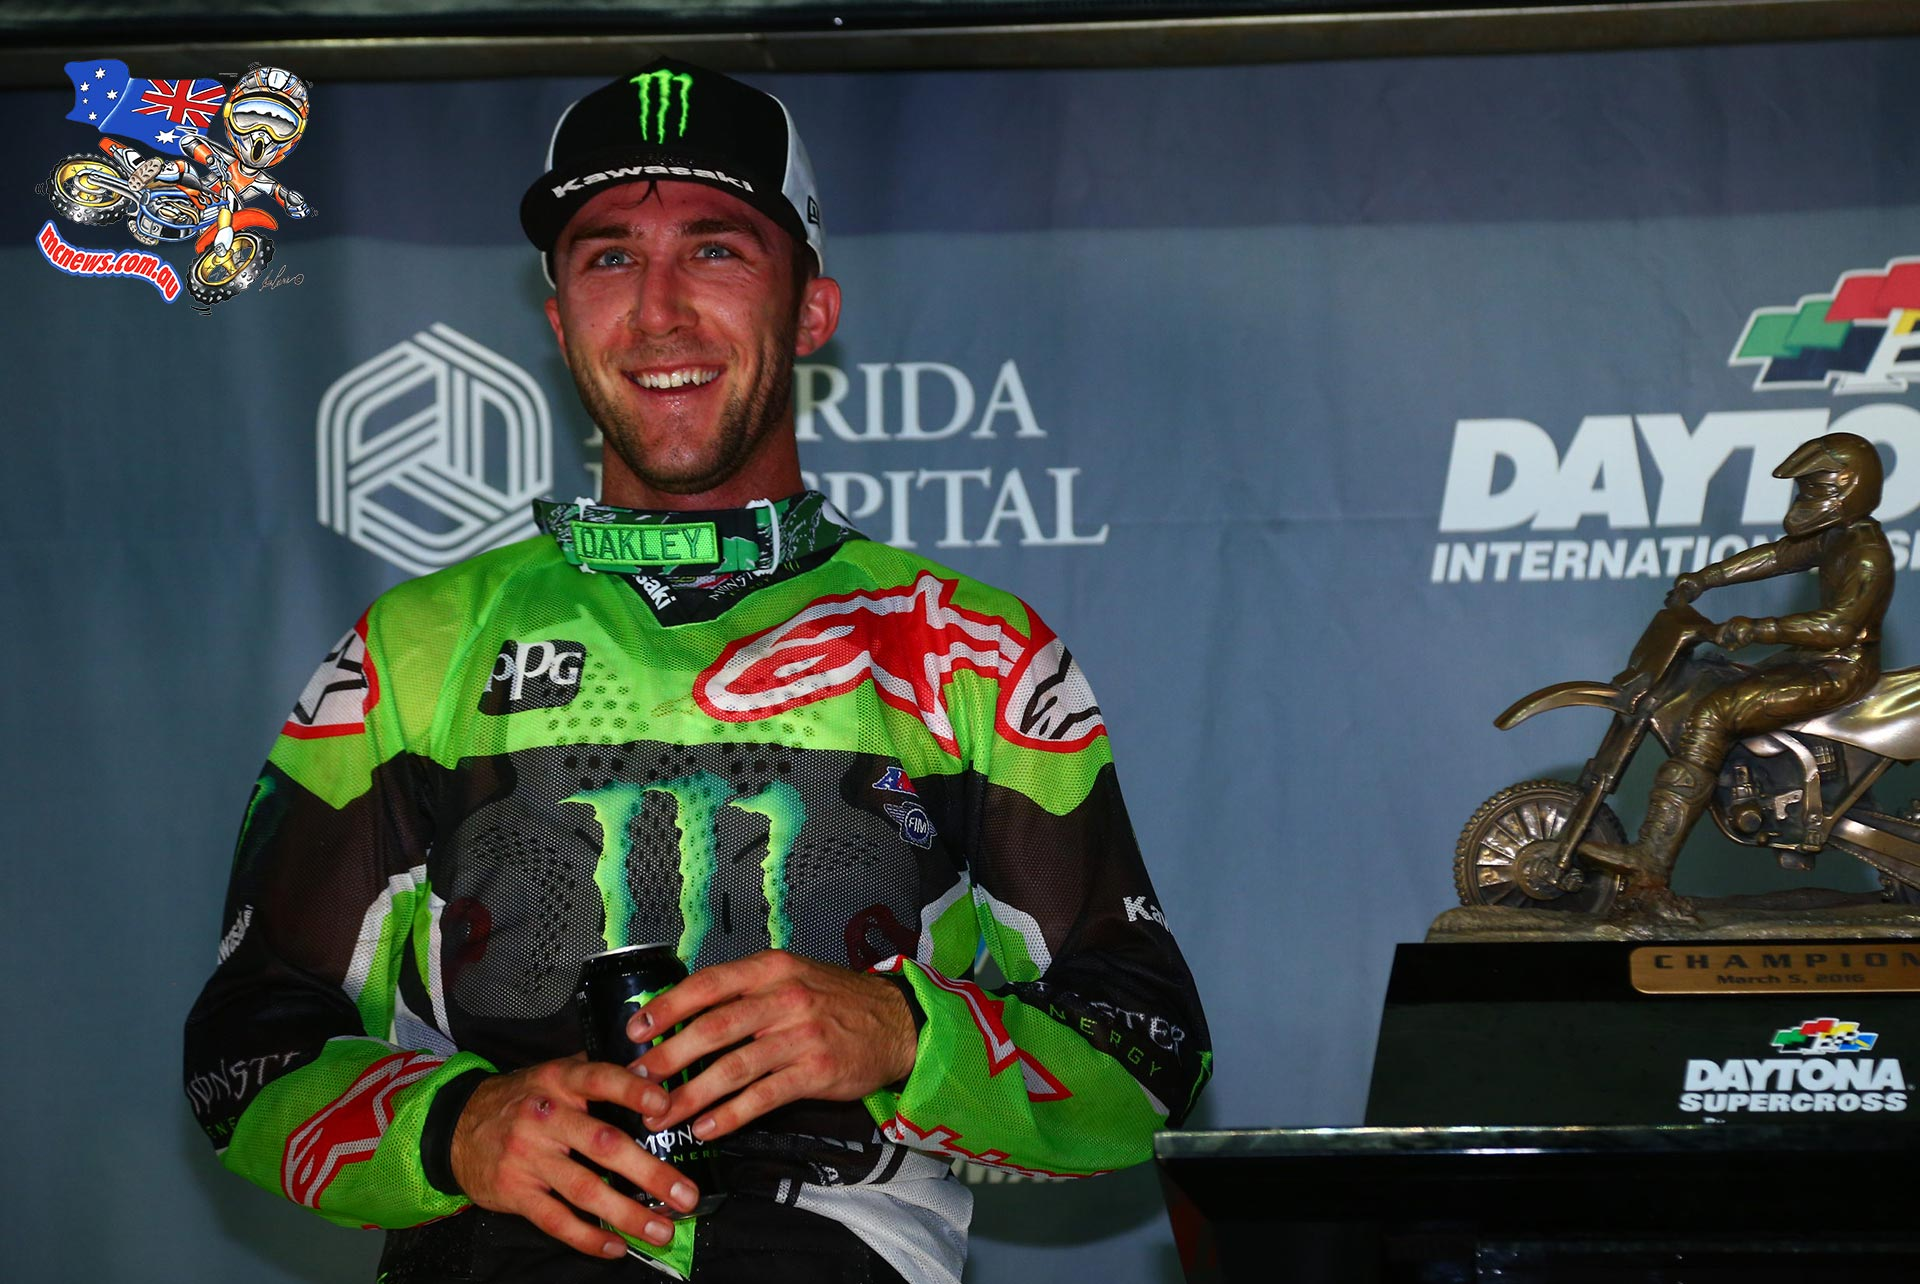 Eli-Tomac-riding-a-Kawasaki-led-every-lap-of-the-lap-SX-cl-final-outrunning-KTM-rider-Ry-wallpaper-wp5007111